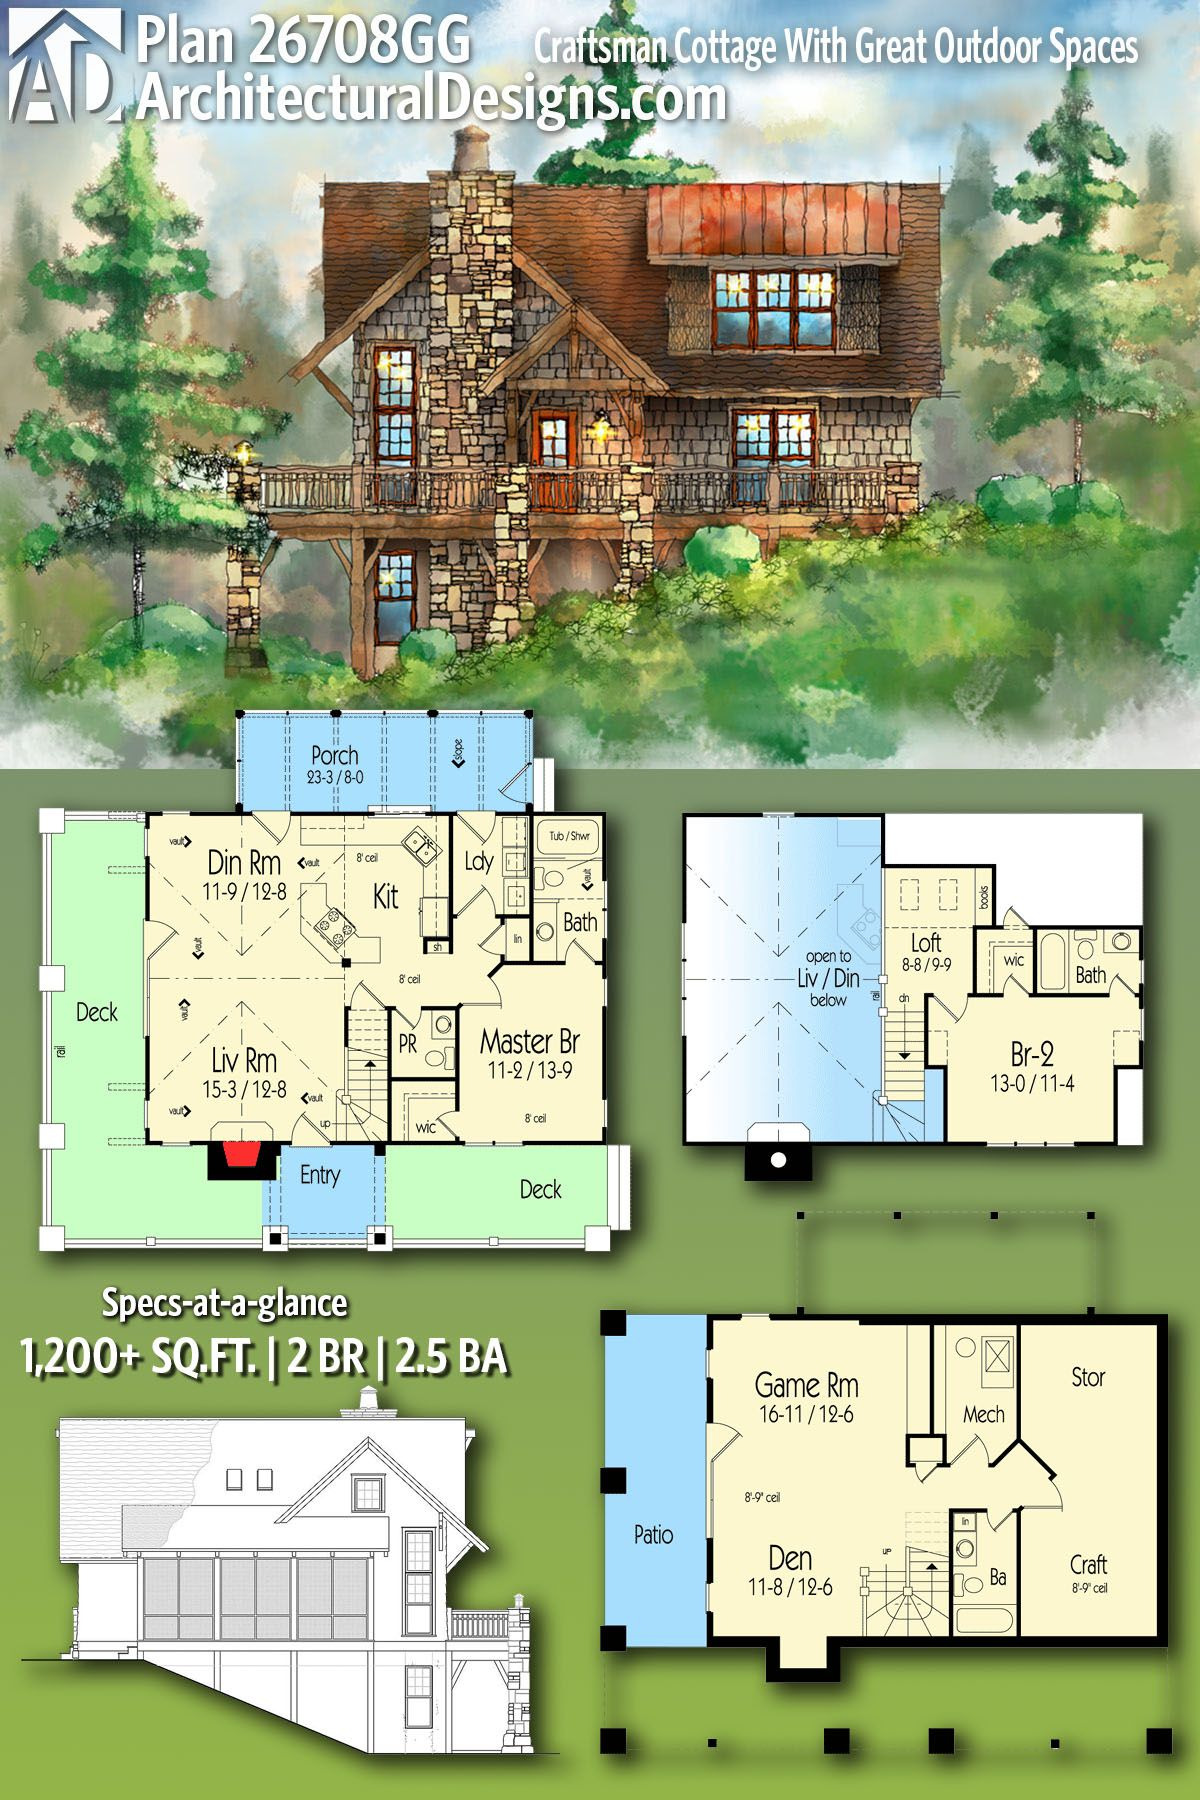 House Plans Timber Frame Fresh Plan Gg Craftsman Cottage with Great Outdoor Spaces